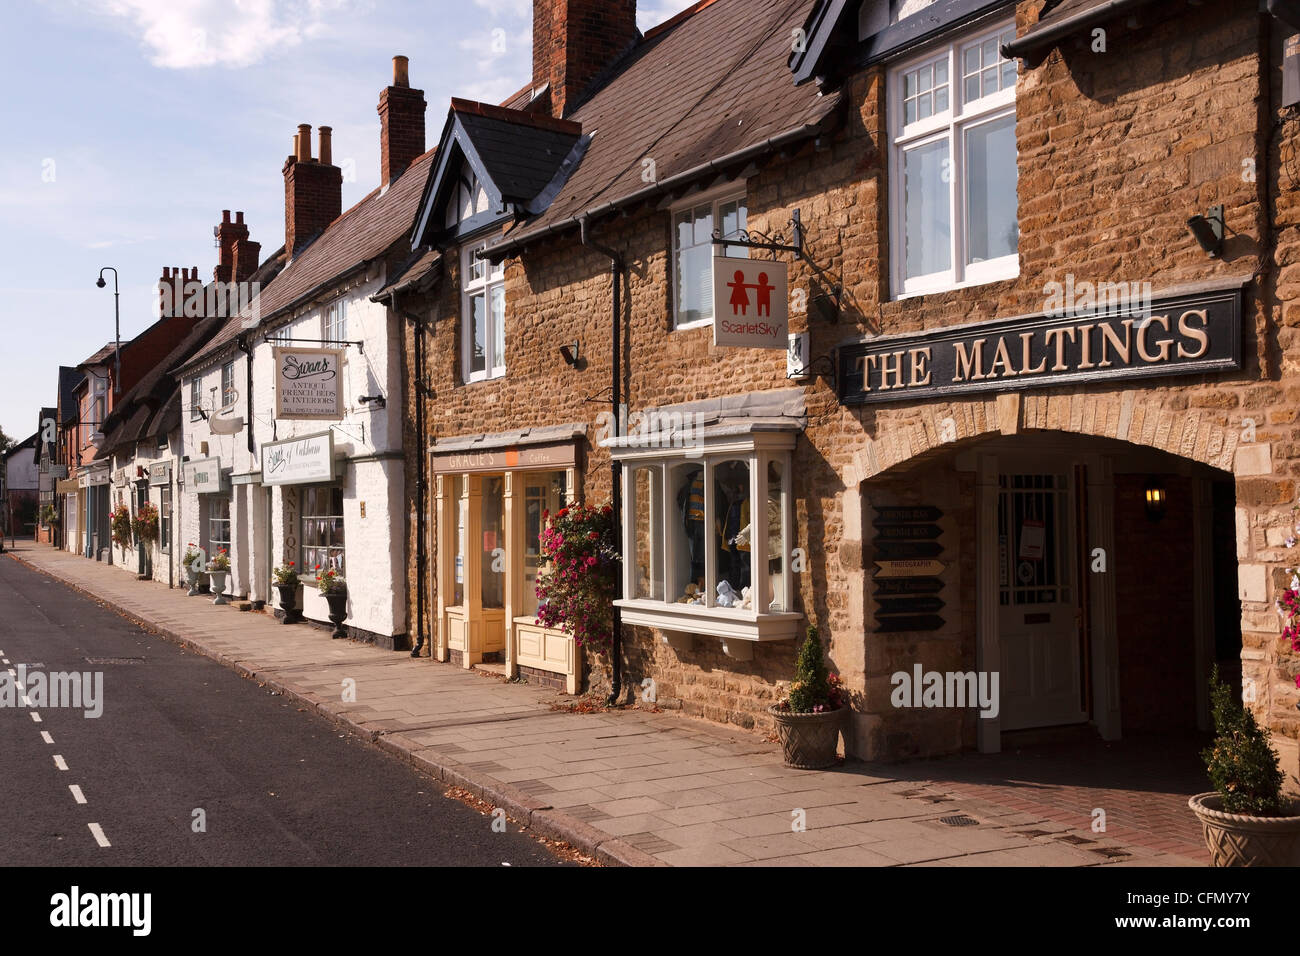 A row of traditional old shop fronts, signs and along town centre shopping street, Mill street, Oakham, Rutland, - Stock Image